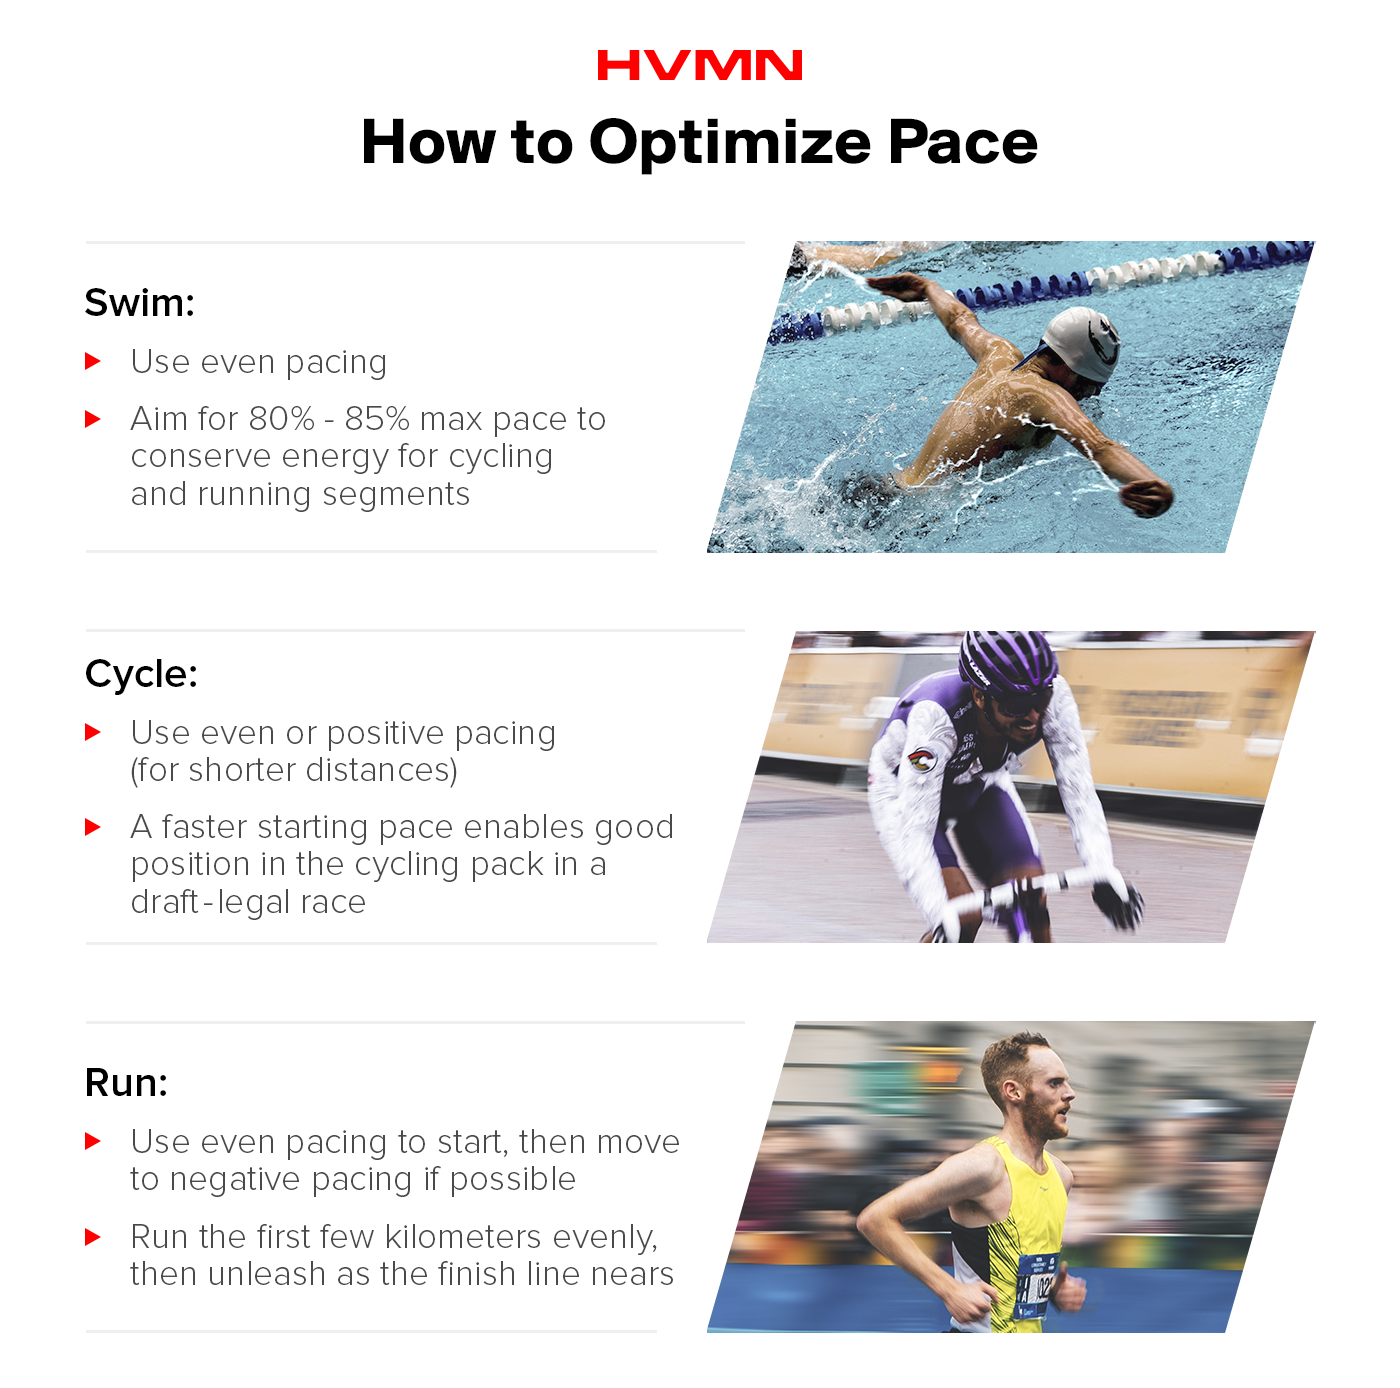 A male swimmer doing the butterfly stroke, a cyclist in a race and a male runner sprinting, all showing how to optimize pace